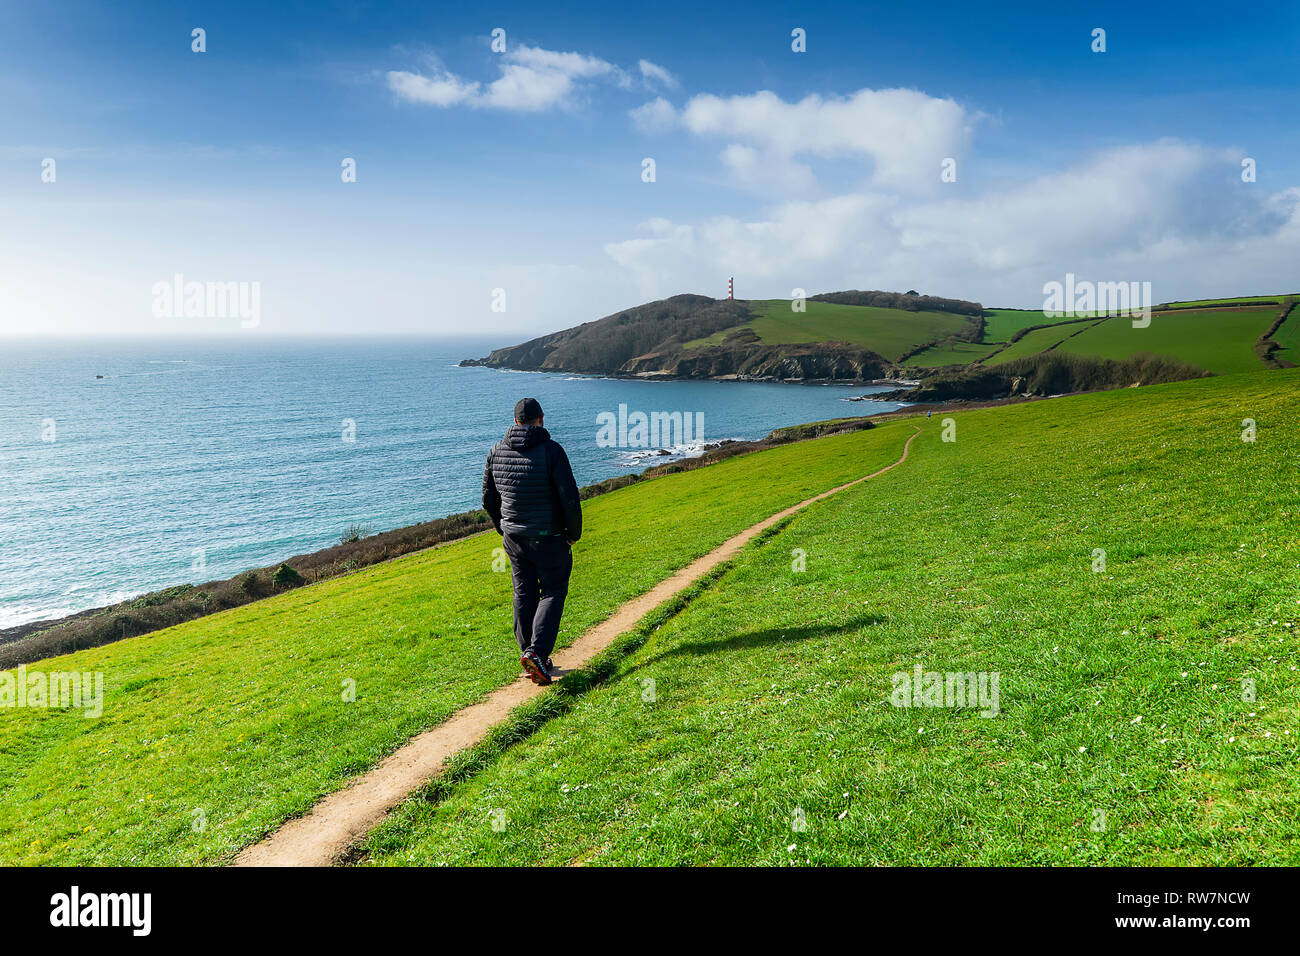 Walking the South West Coast Path from Fowey to Gribbin Head on an unseasonaly warm February day. I'm the person in the photo & allow commercial usage. - Stock Image